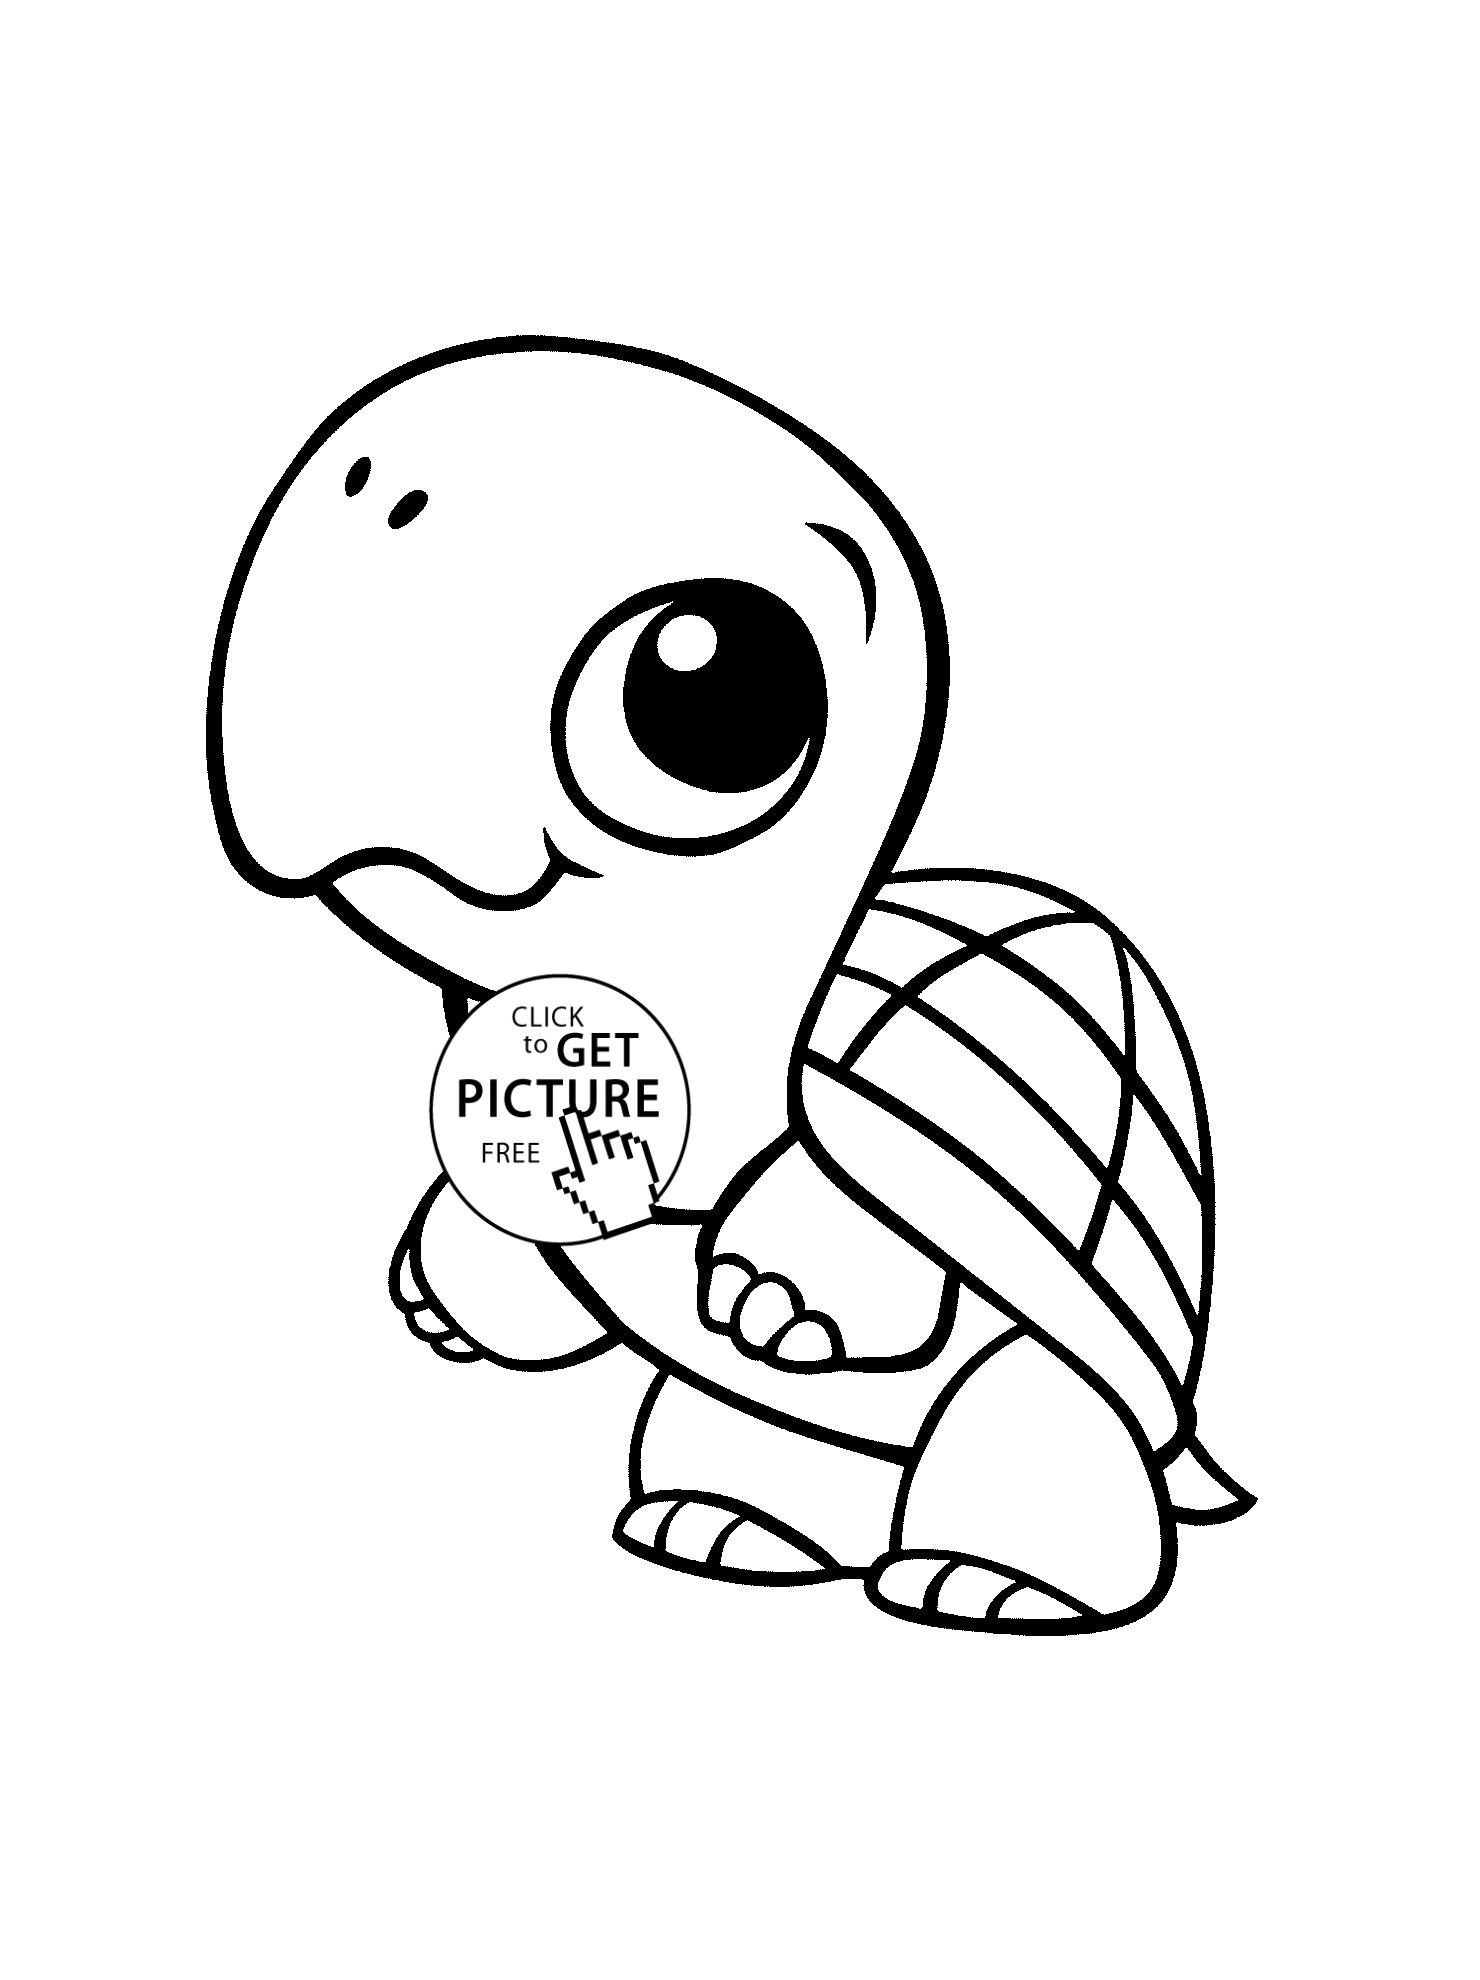 Coloring Page Of A Sea Turtle Youngandtae Com Animal Coloring Pages Turtle Coloring Pages Cute Coloring Pages